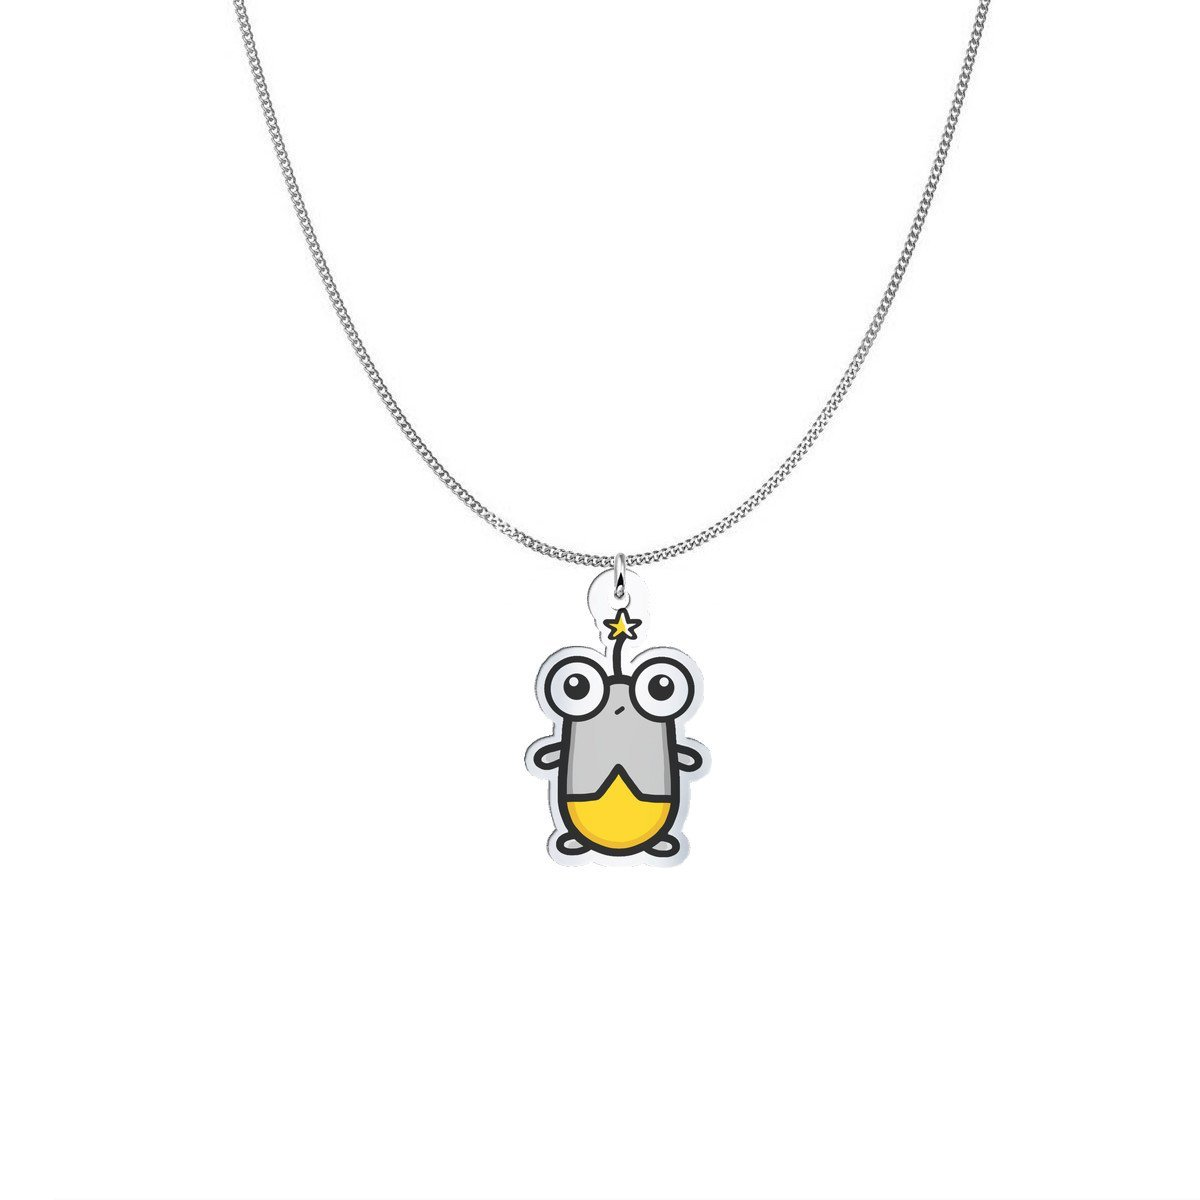 Pendant - Maymay The Cheeky Demon Of Insecurity Silver Necklace